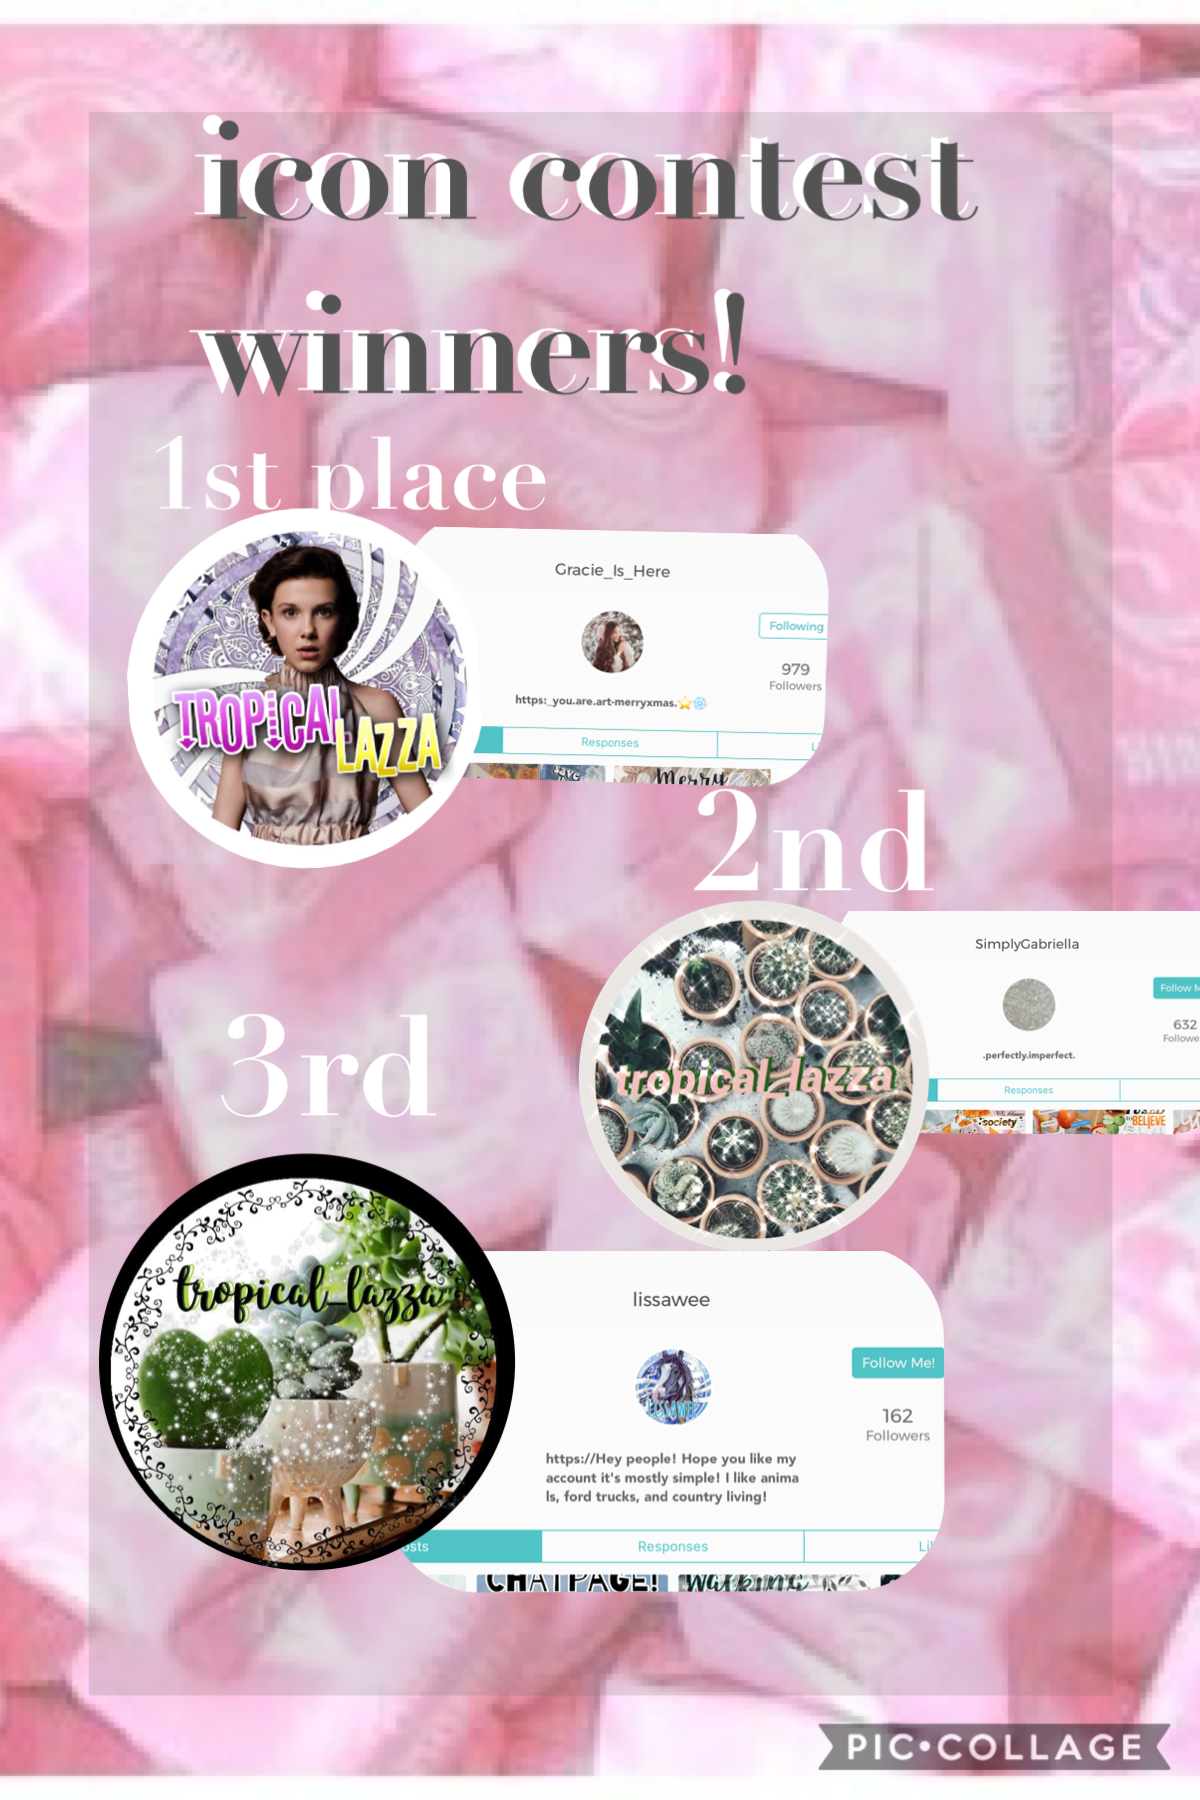 sorry for being unactive school holidays are soon so hopefully i will be more active during that time but congratulations to the winners!